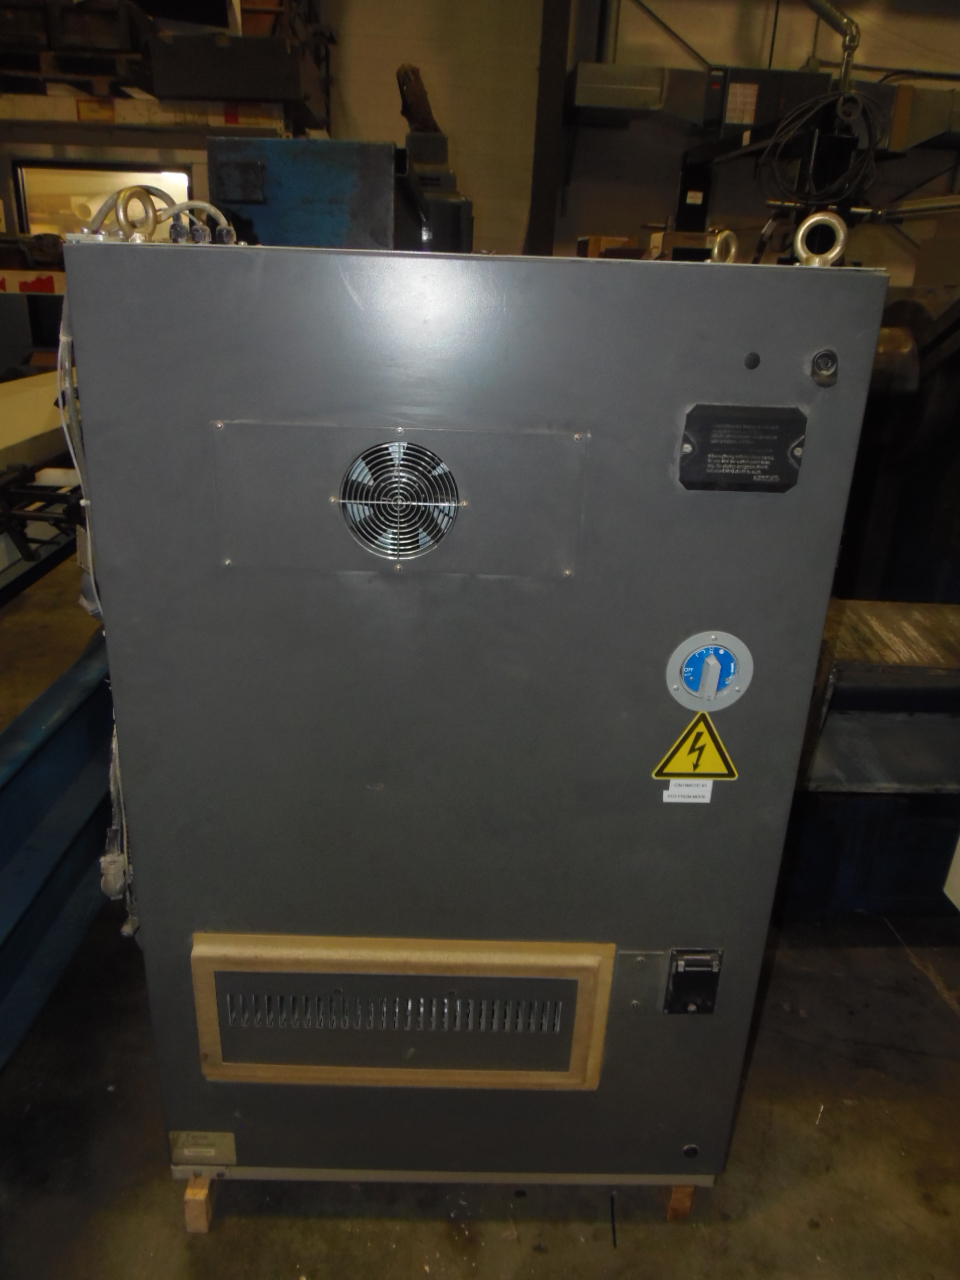 GE FANUC O-MC CNC CONTROL AND CABINET, CAT. NO. 44A850205-G504R08, A06B-6058-H334, A06B-6059-H203, A02B-0098-B511, 1990